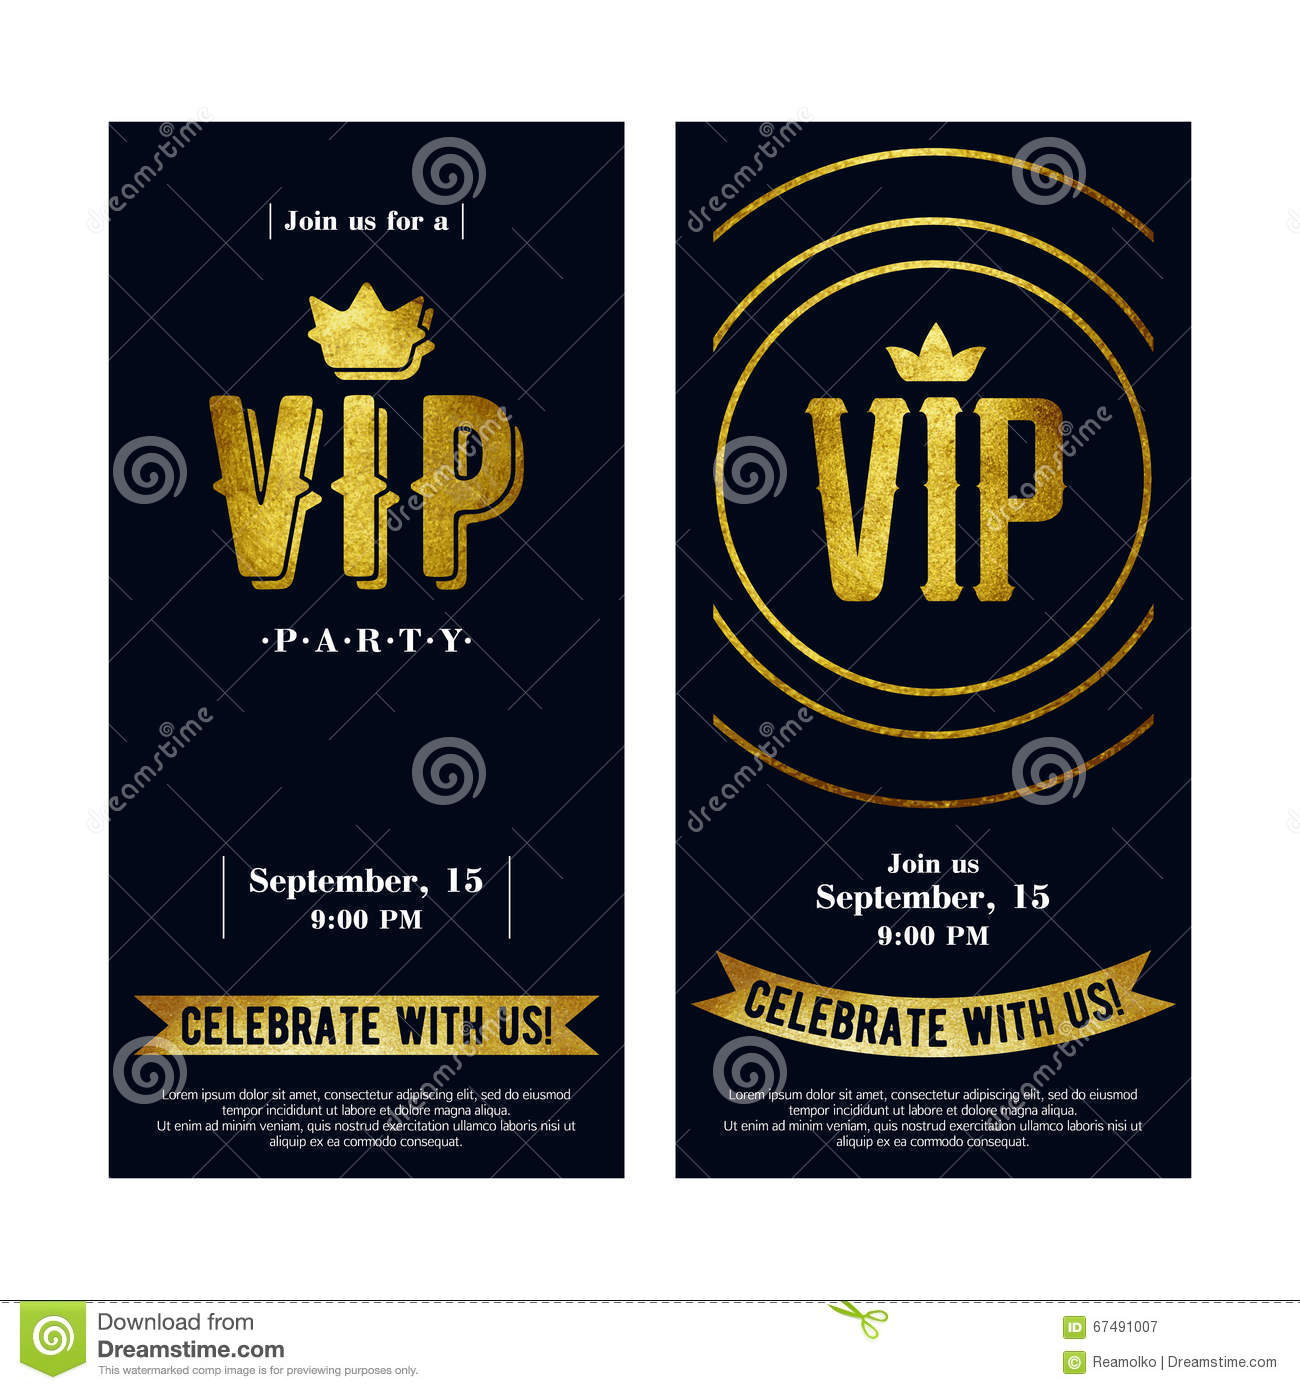 VIP Invitation Cards With Golden Paint Letters. Stock Vector - Image ...